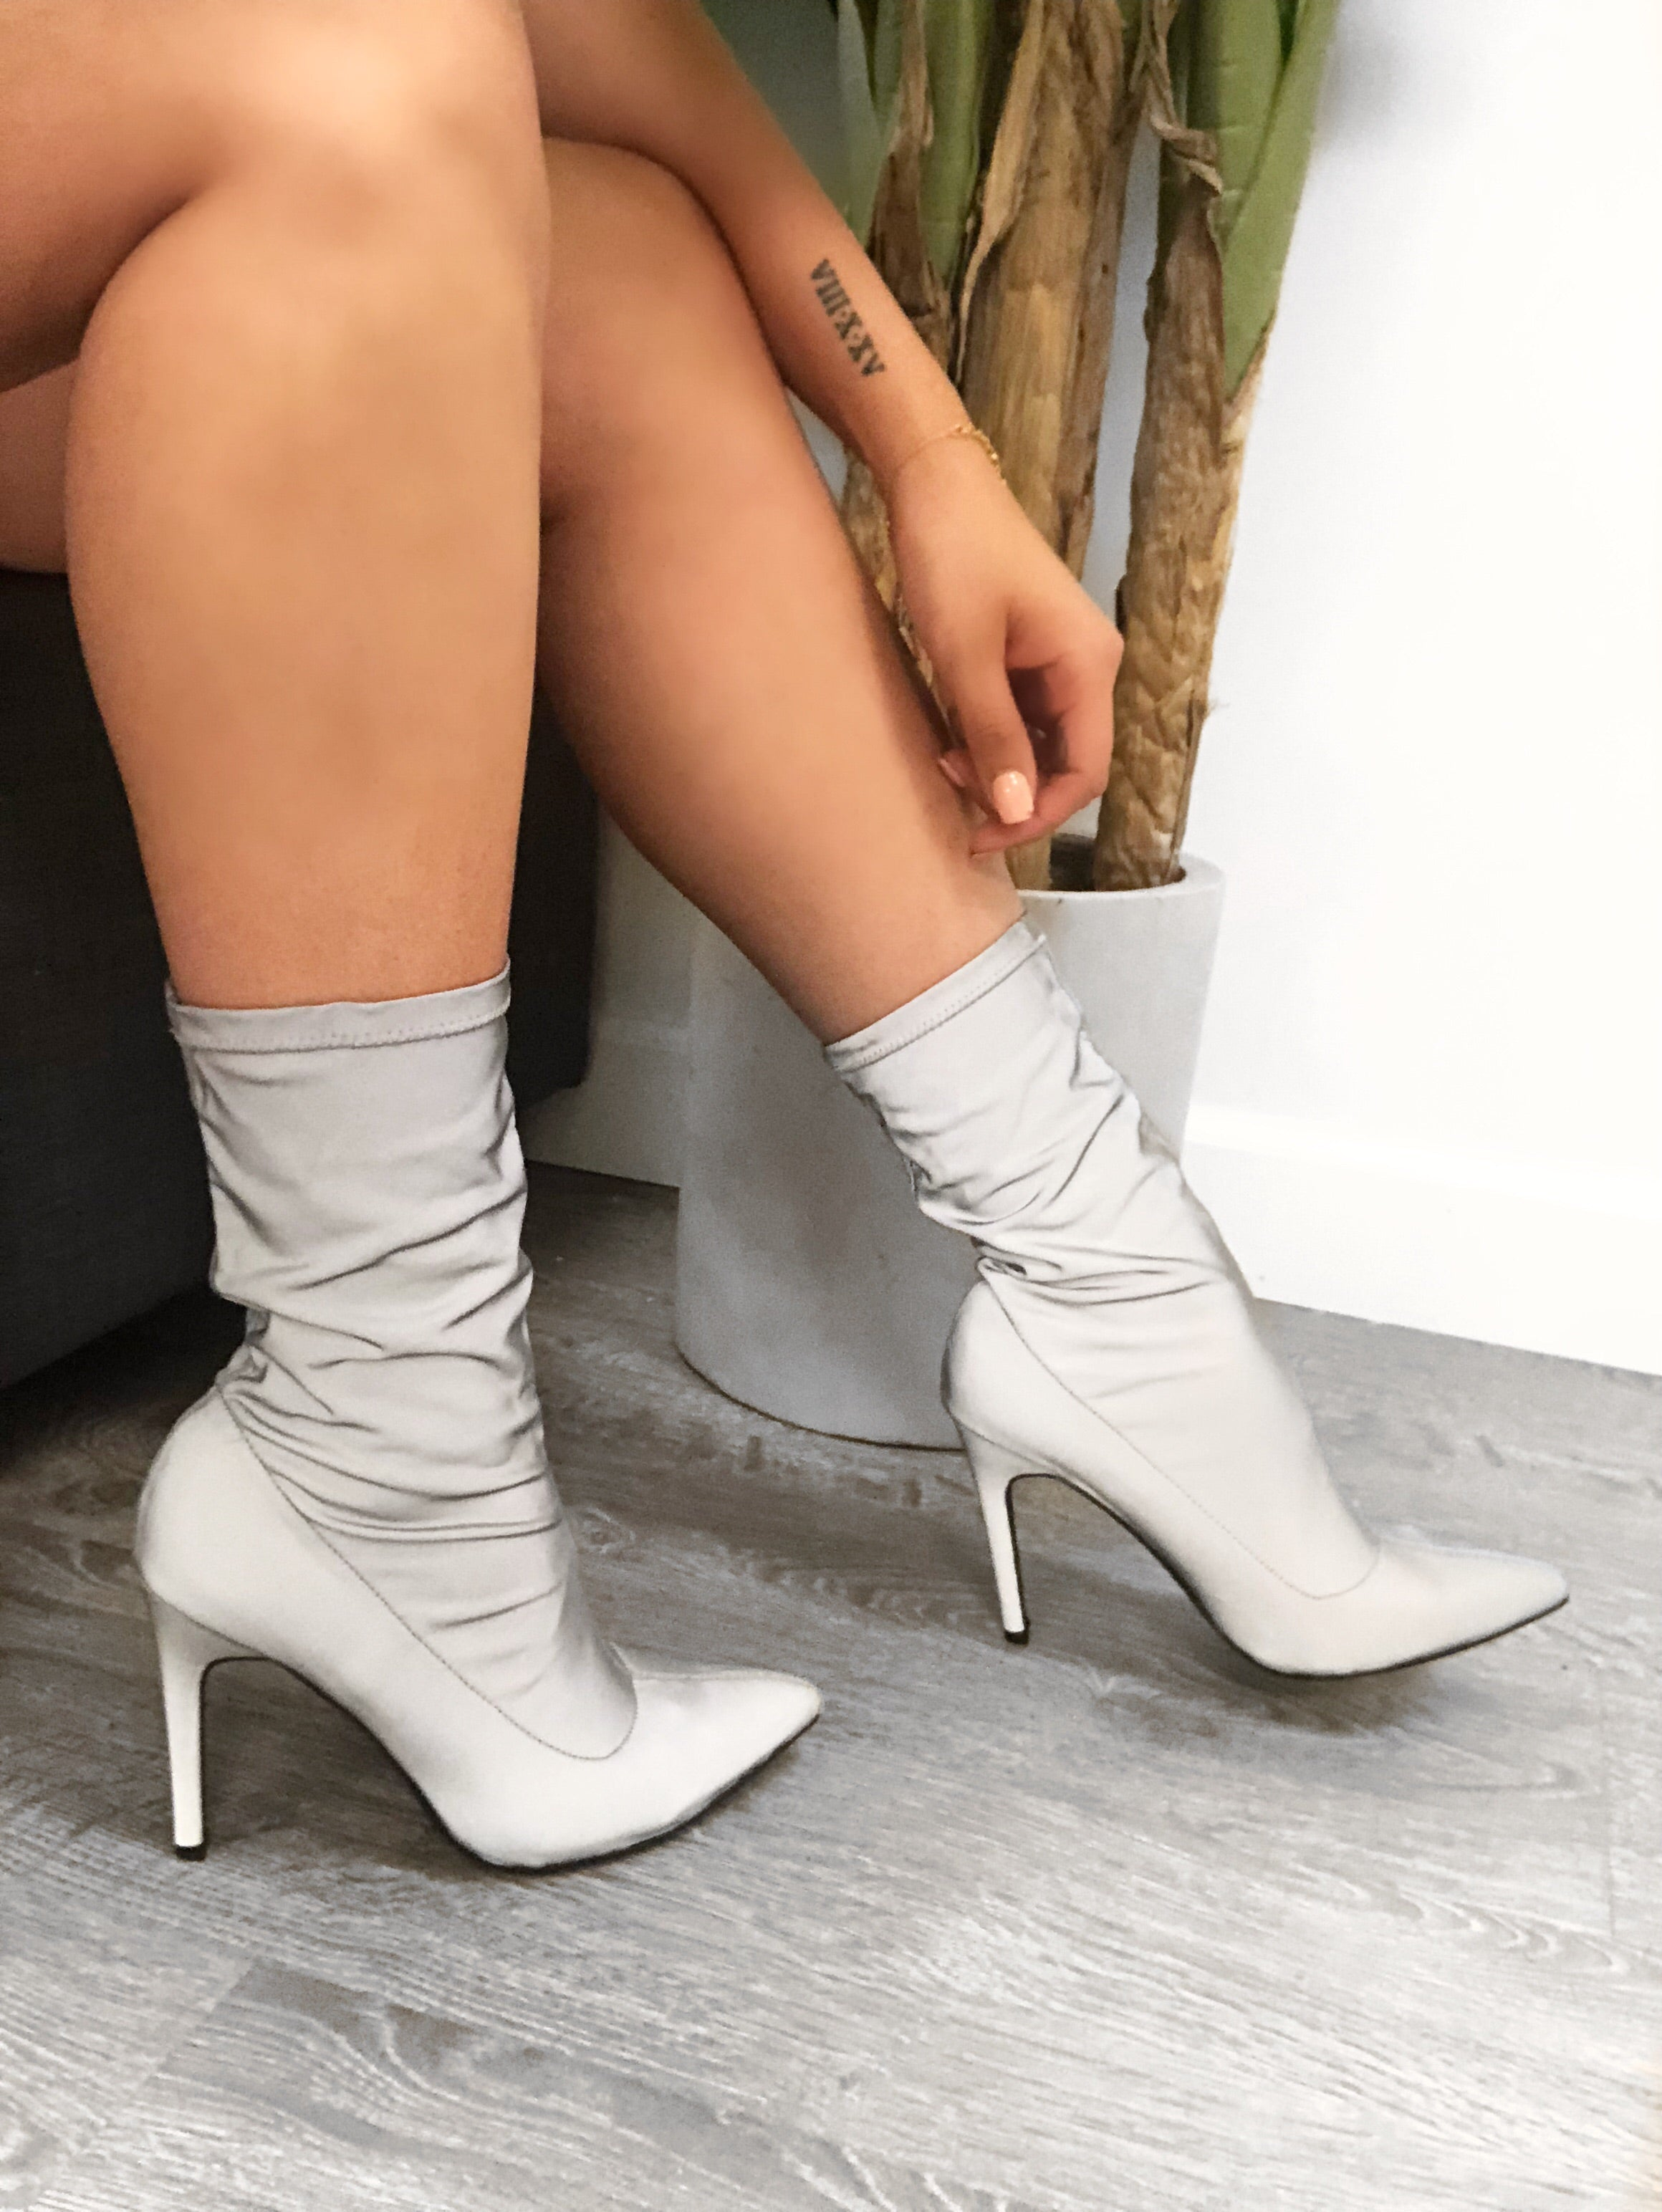 grey reflective heel booties, goes up right under calf, covers whole foot